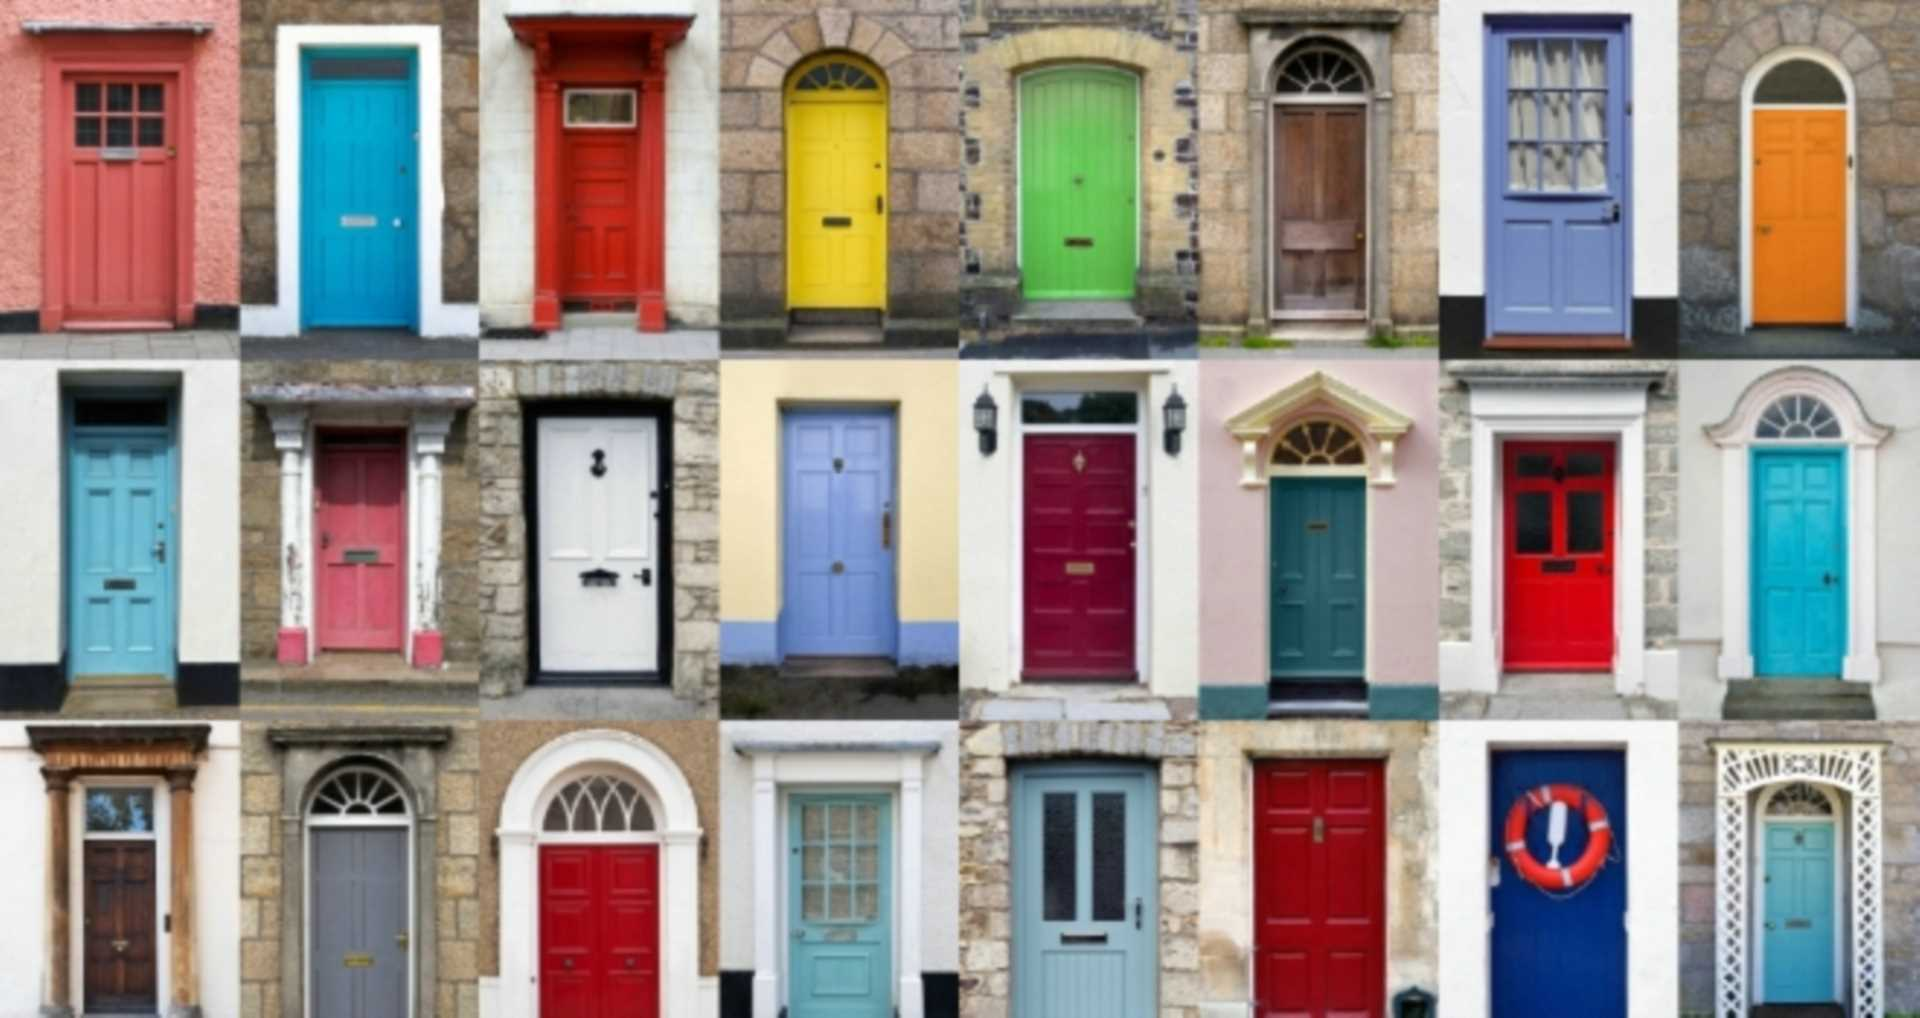 Which colour front door offers the warmest welcome?